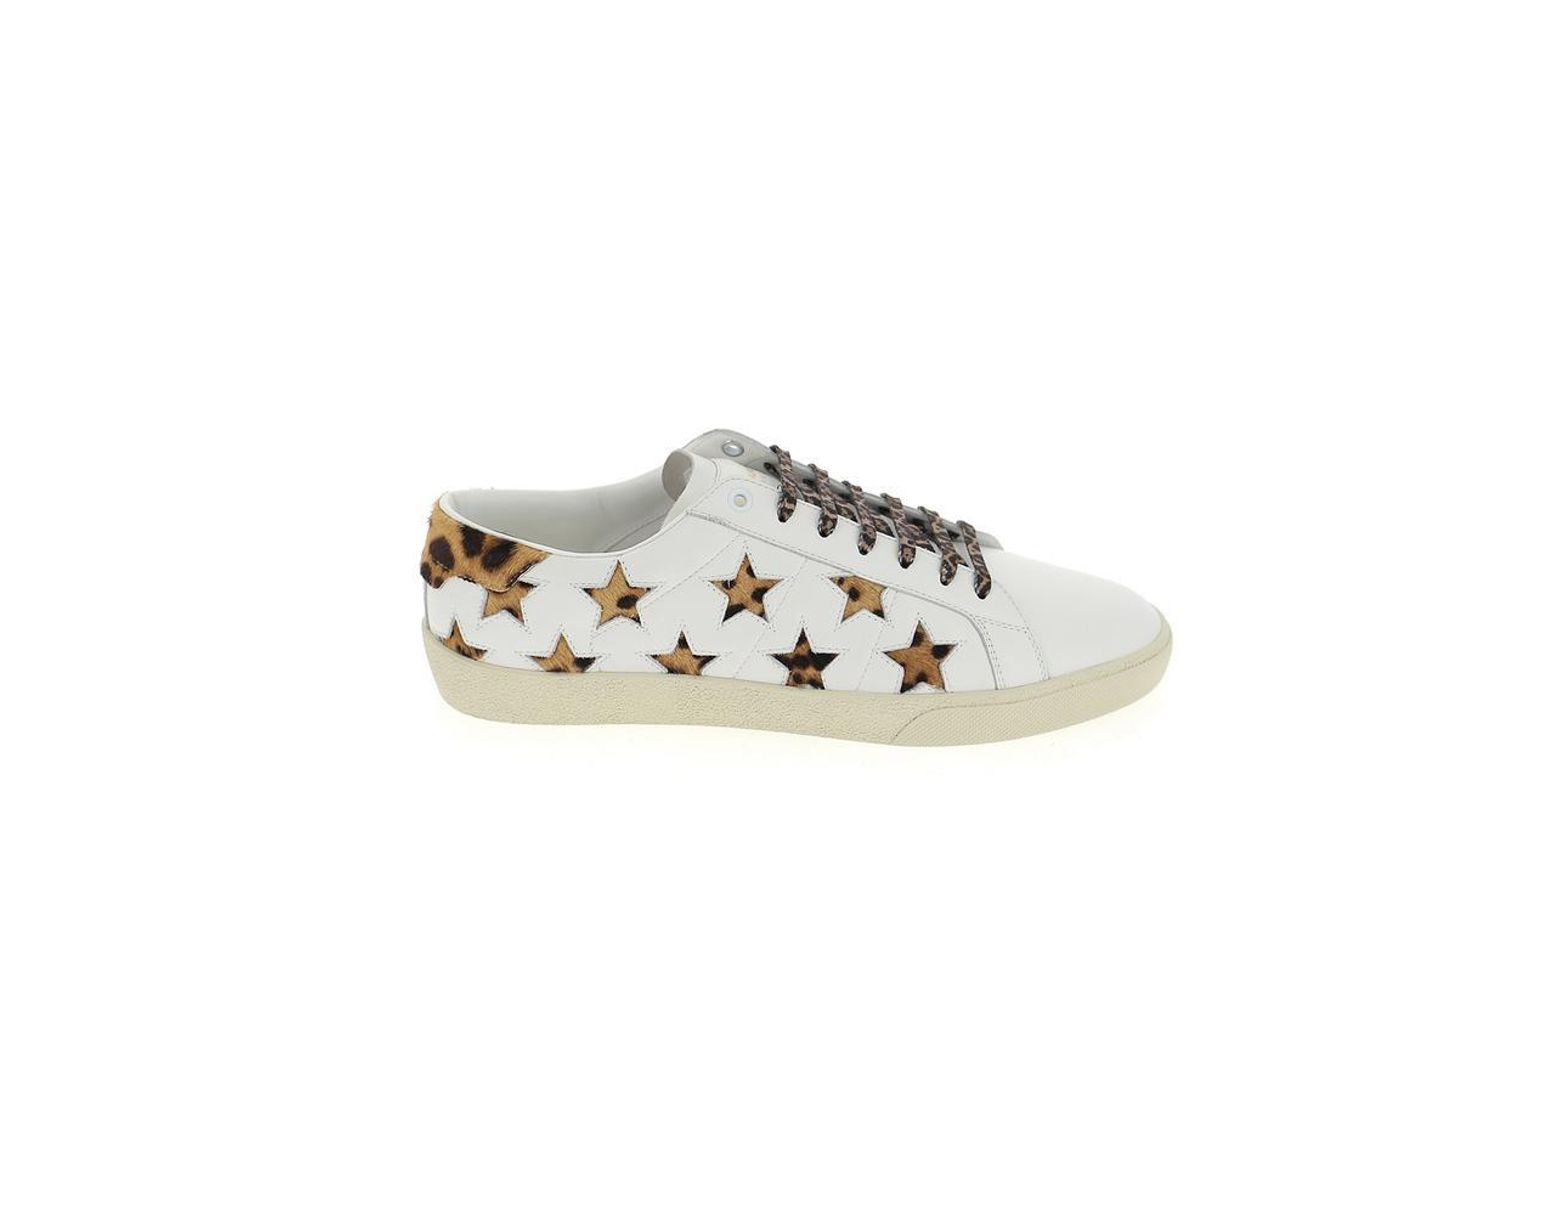 410bfb3e280 Saint Laurent Leopard Print Star Court Classic Sneakers in White for Men -  Save 60% - Lyst